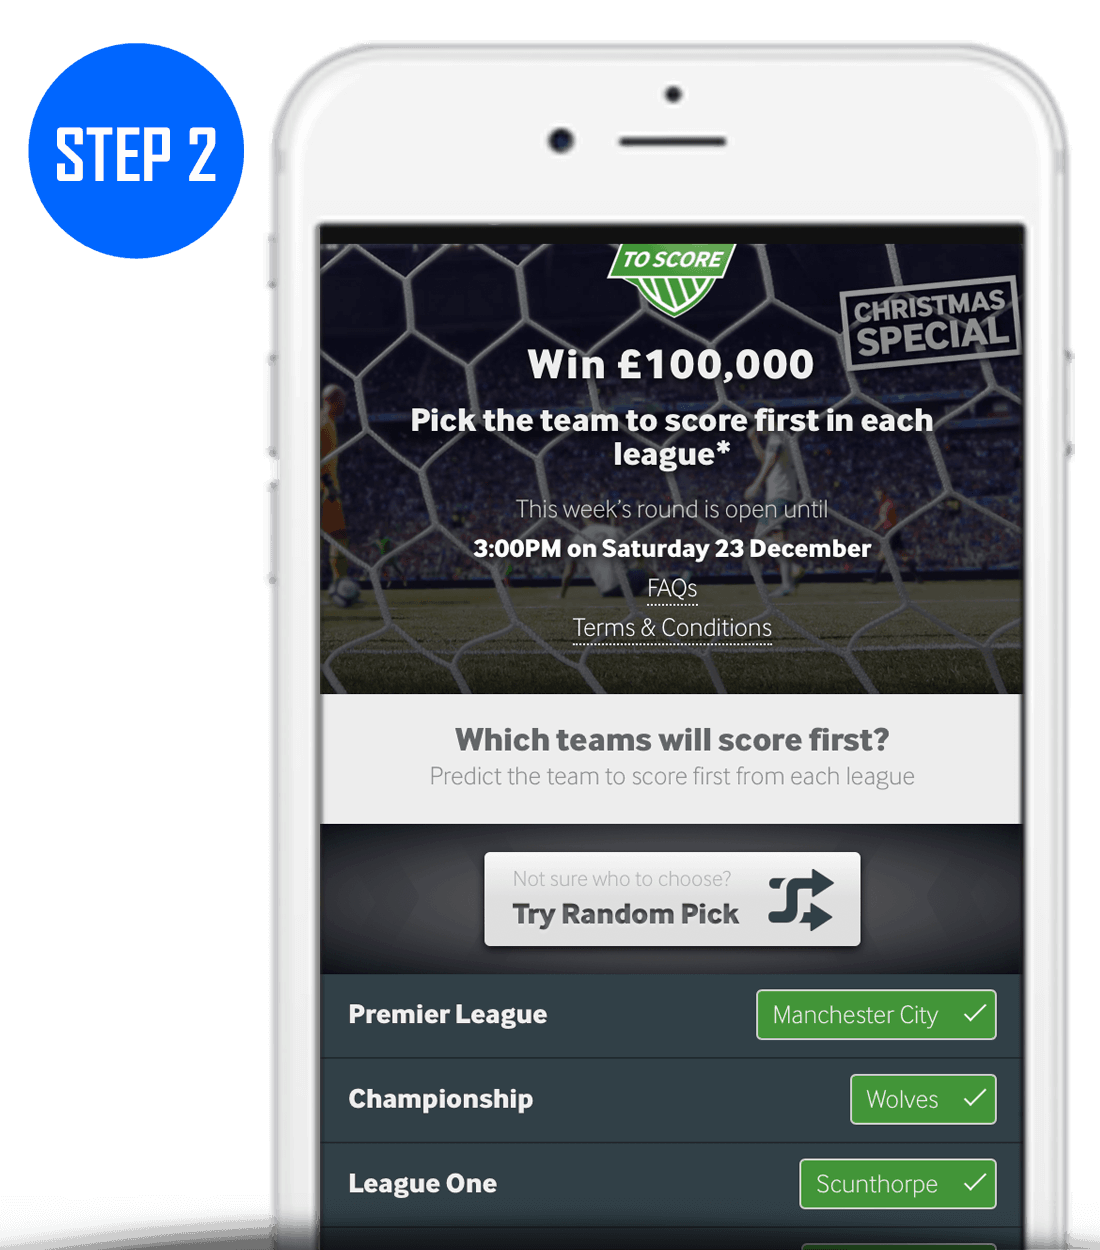 How To Play Betway 4 To Score Step 2